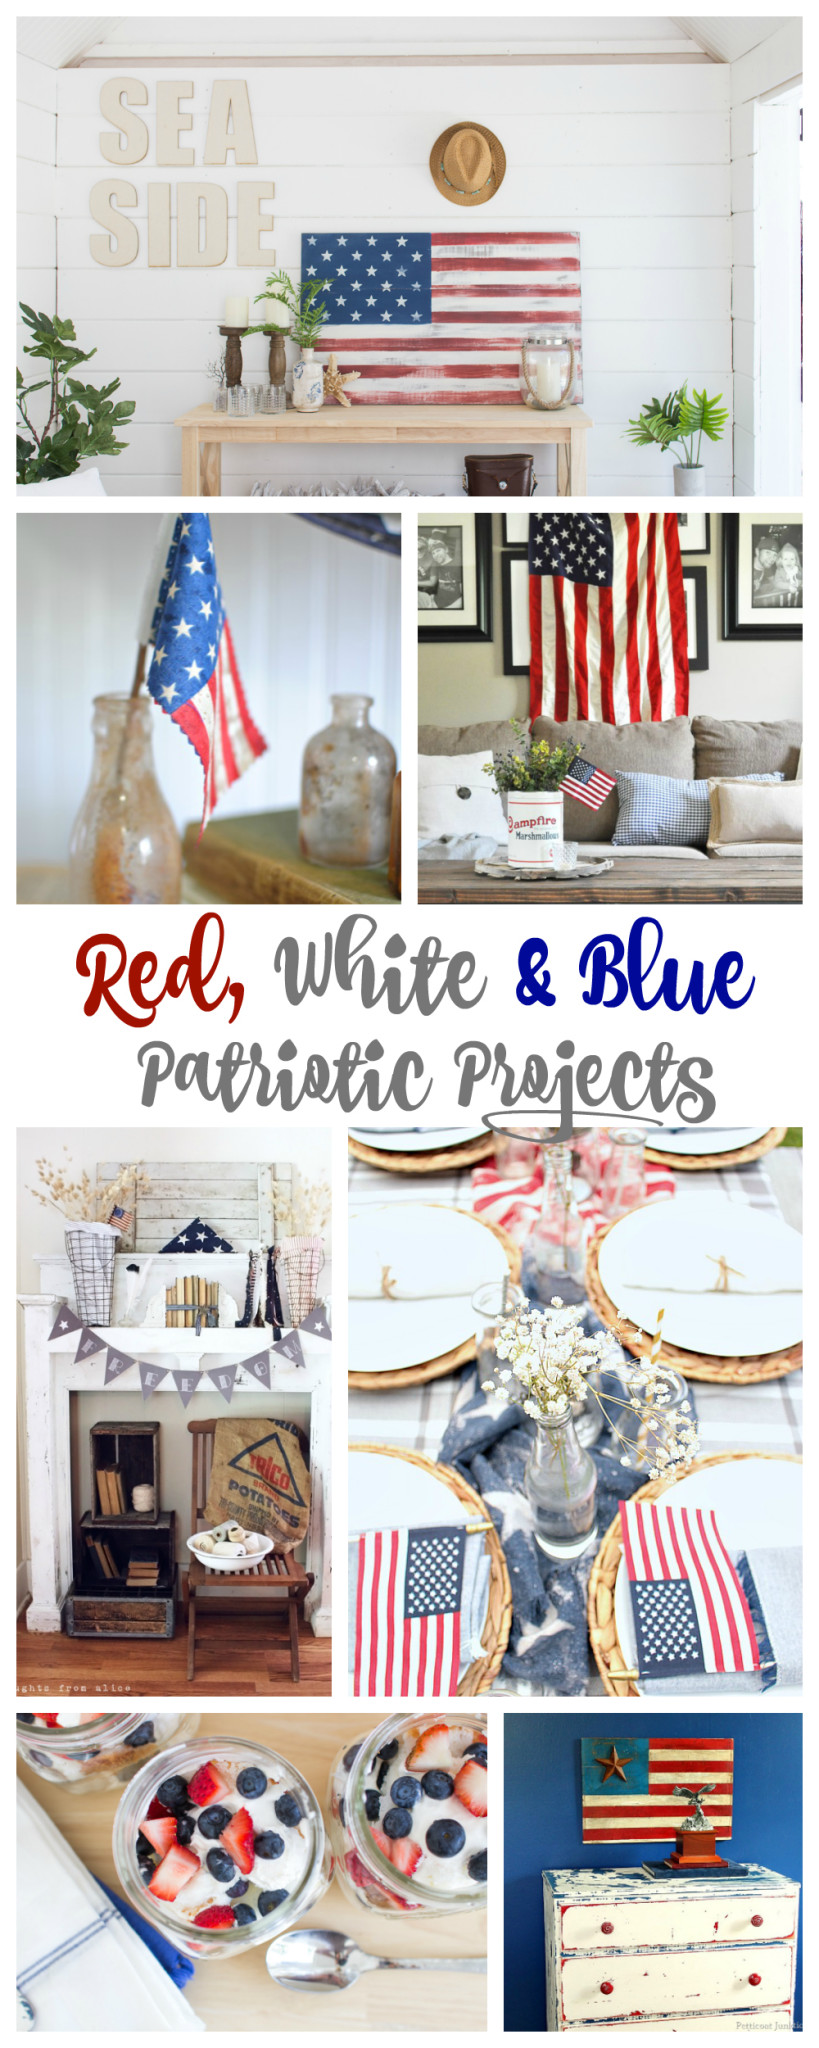 Red White and Blue Patriotic Projects